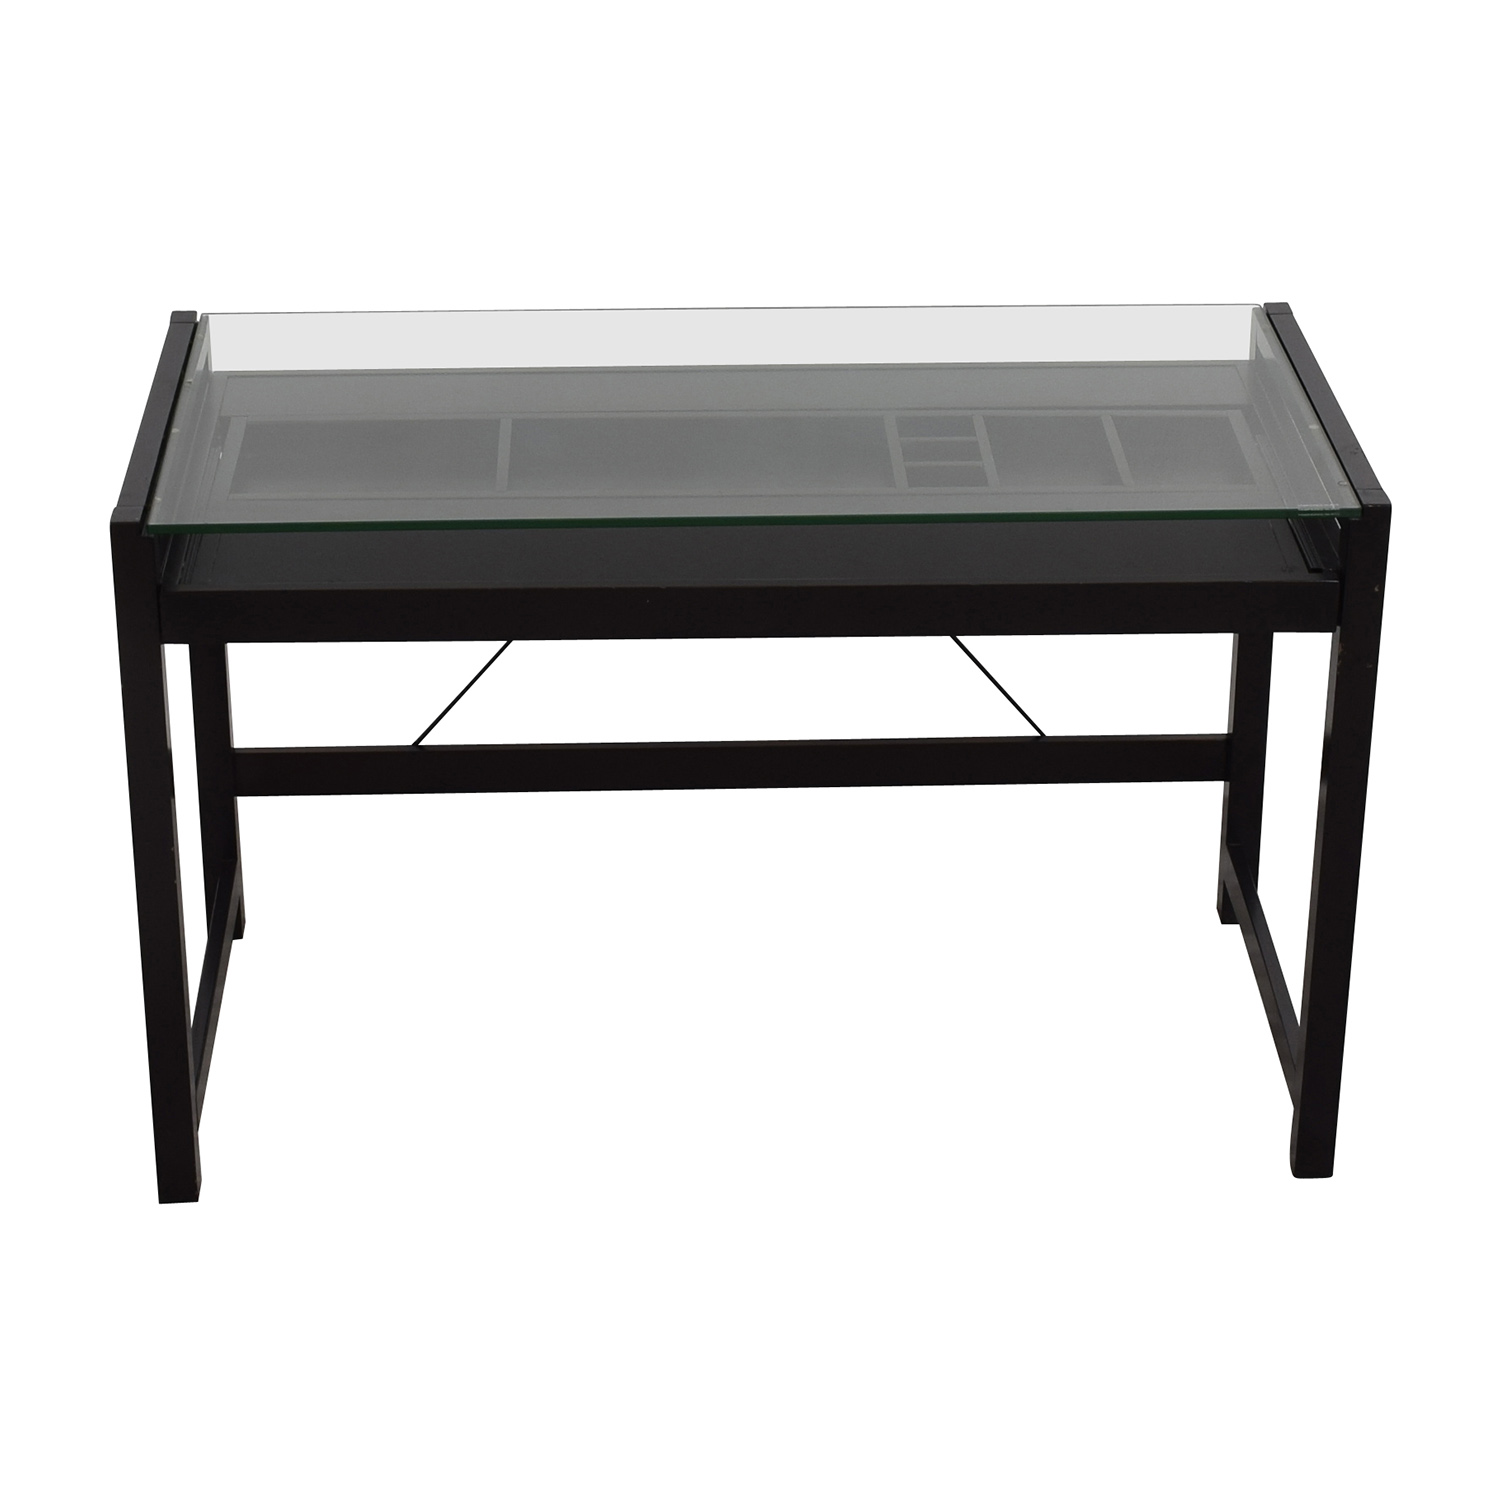 Acme Acme Loakim Glass Top Computer Desk on sale